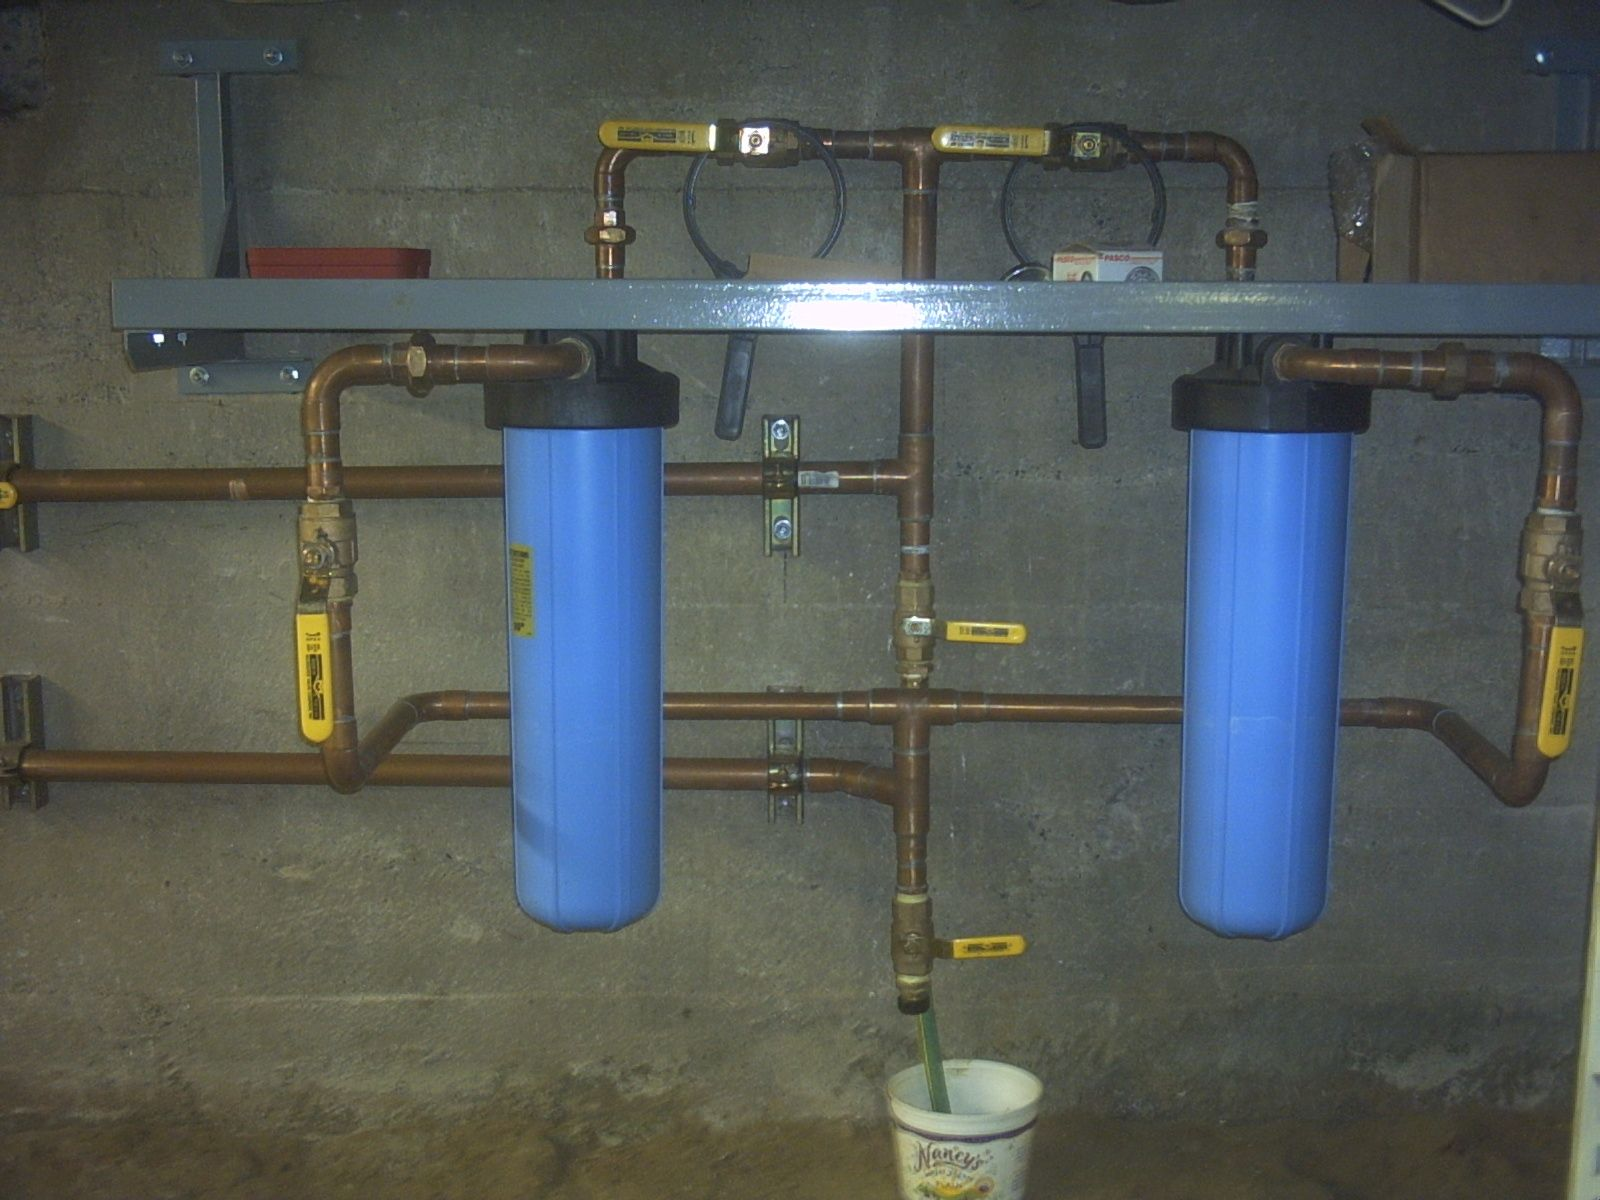 House Water Filters Systems 17 Best Images About Water On Pinterest Shower Valve Water